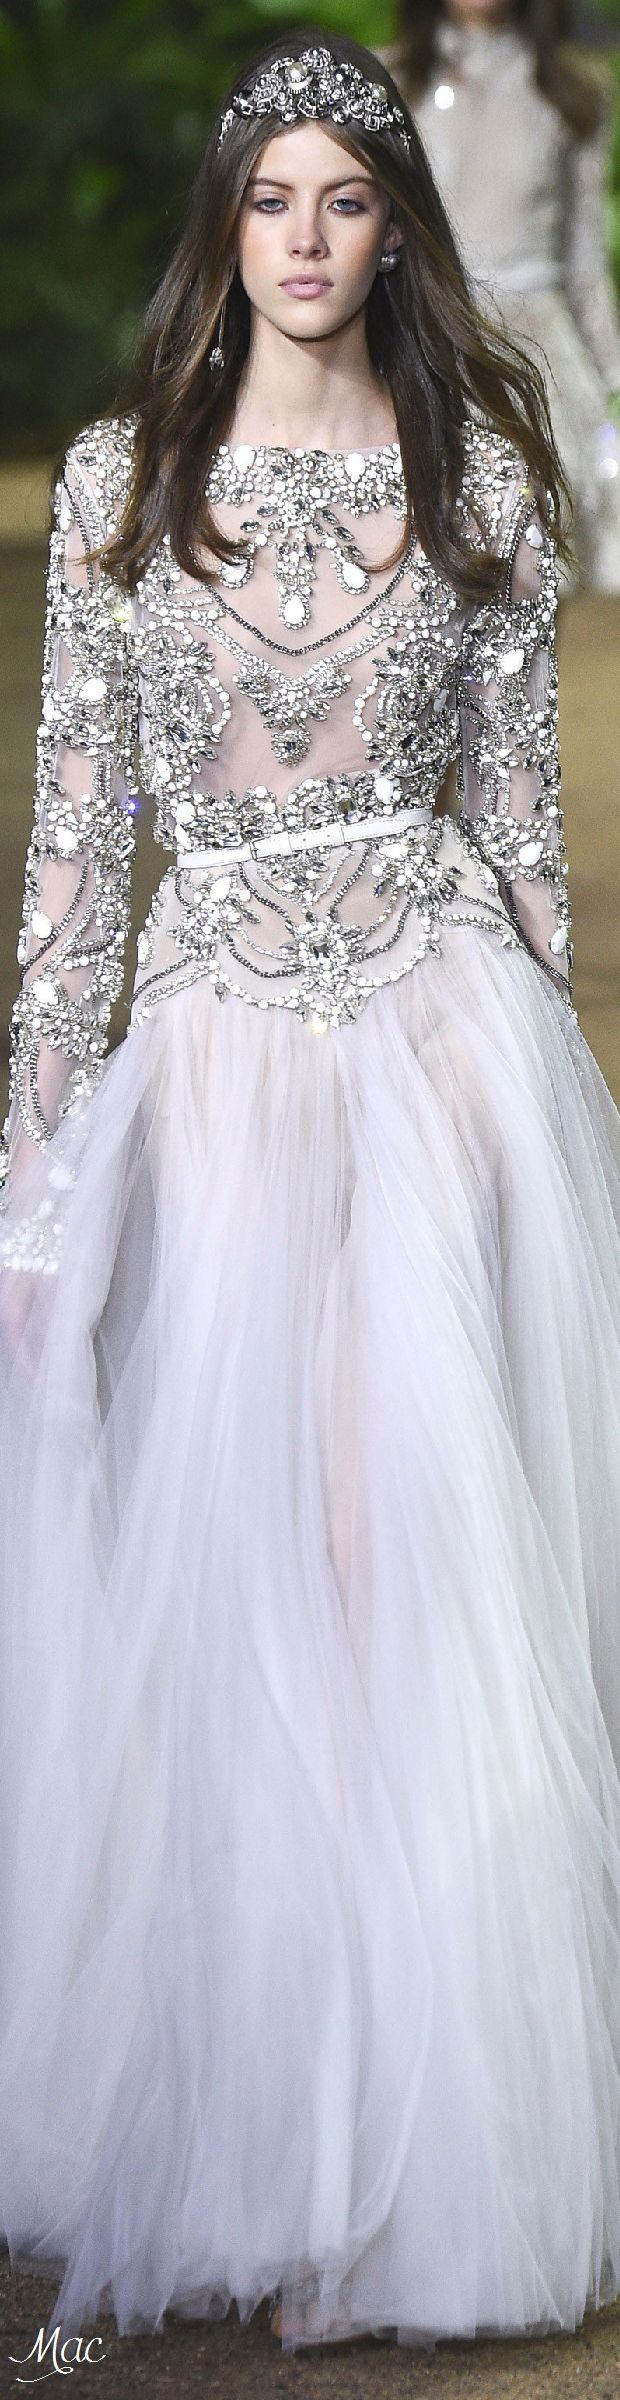 832 best Wedding Dresses. images on Pinterest | Gown wedding, Dream ...